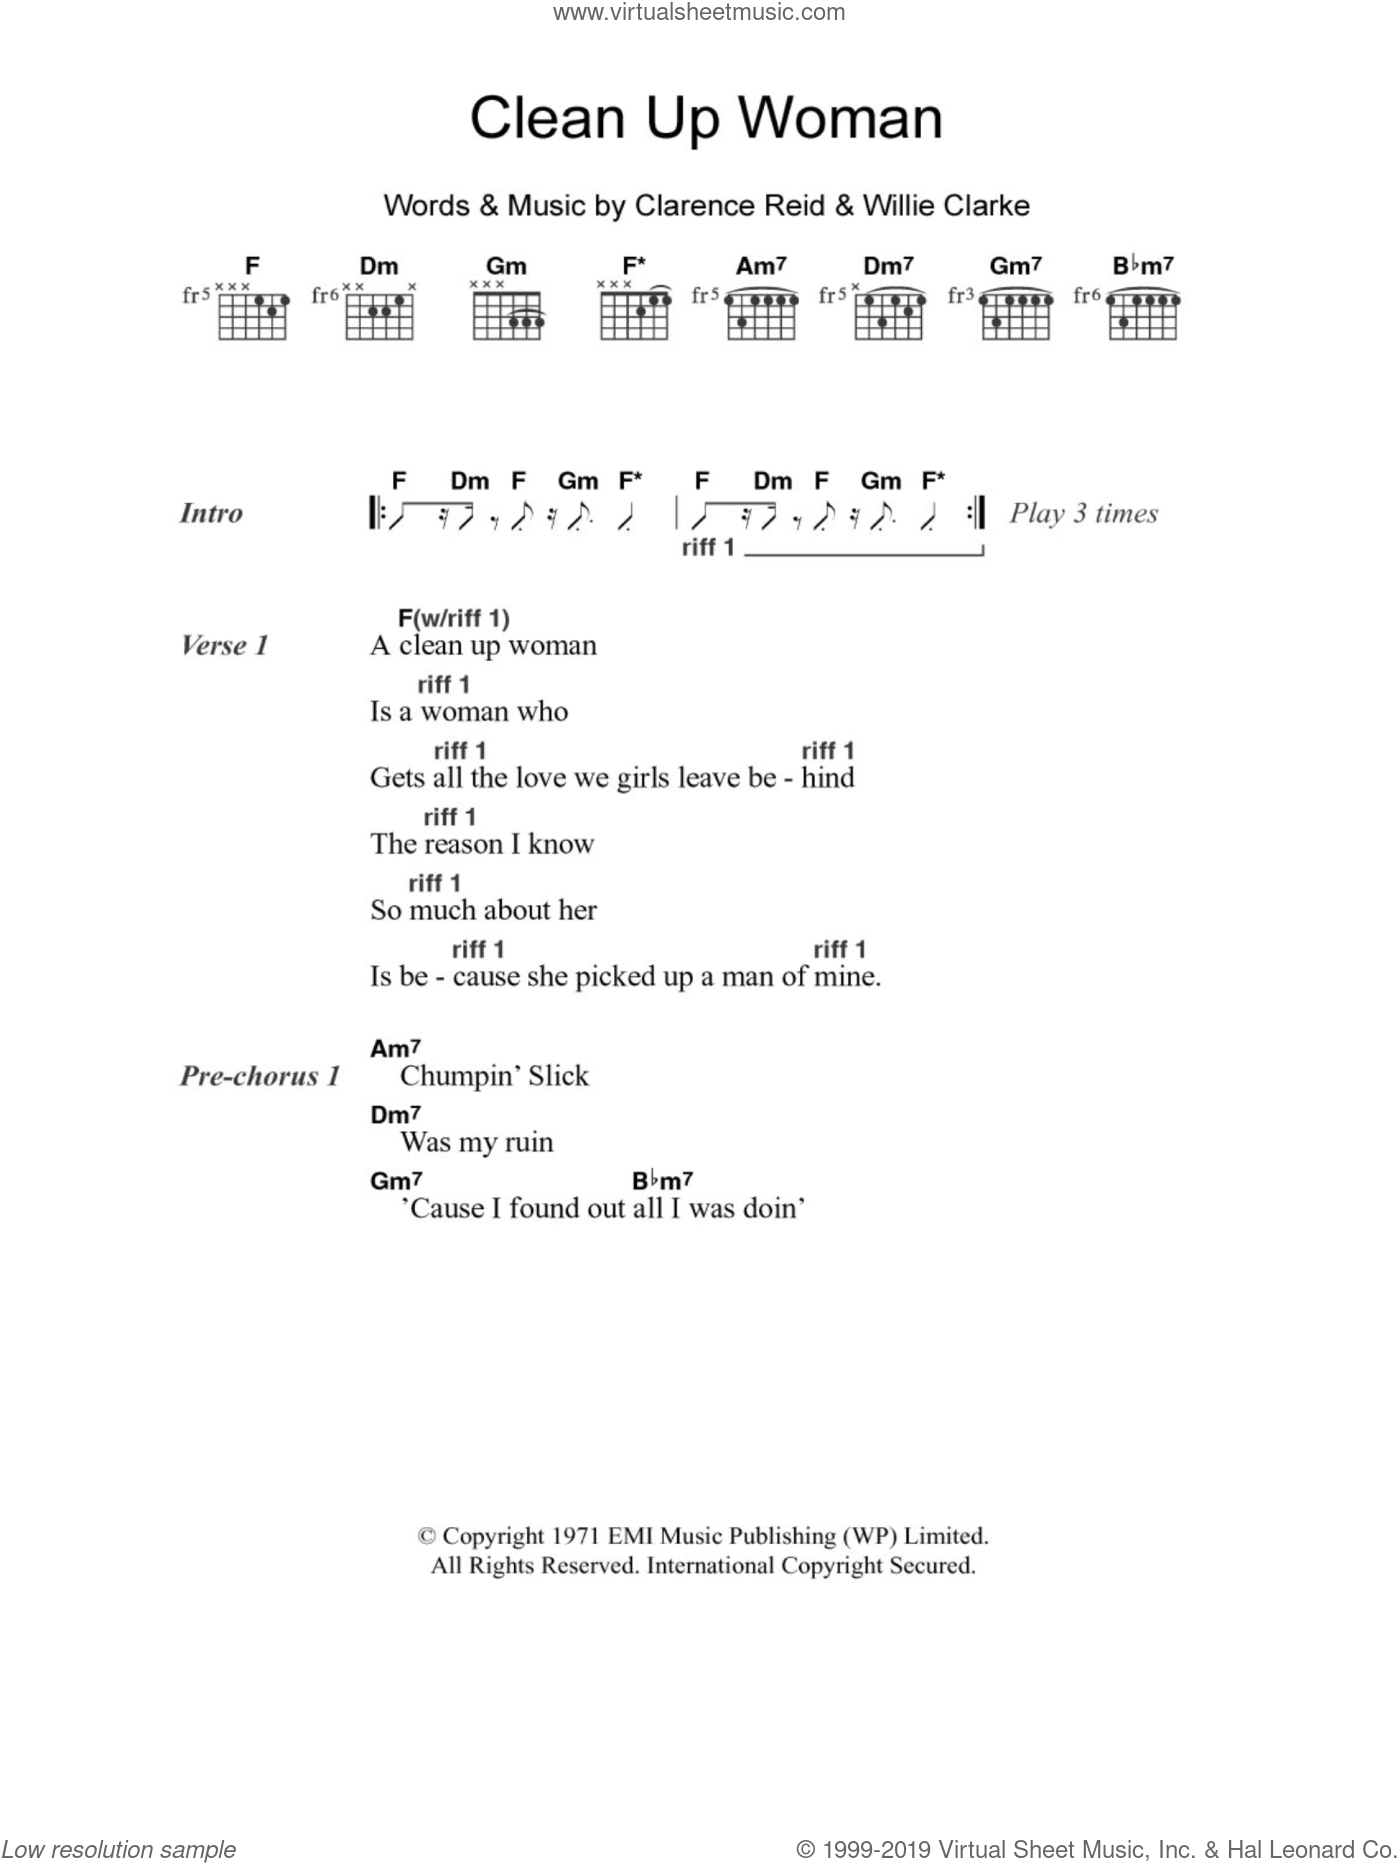 Clean Up Woman sheet music for guitar (chords, lyrics, melody) by Willie Clarke